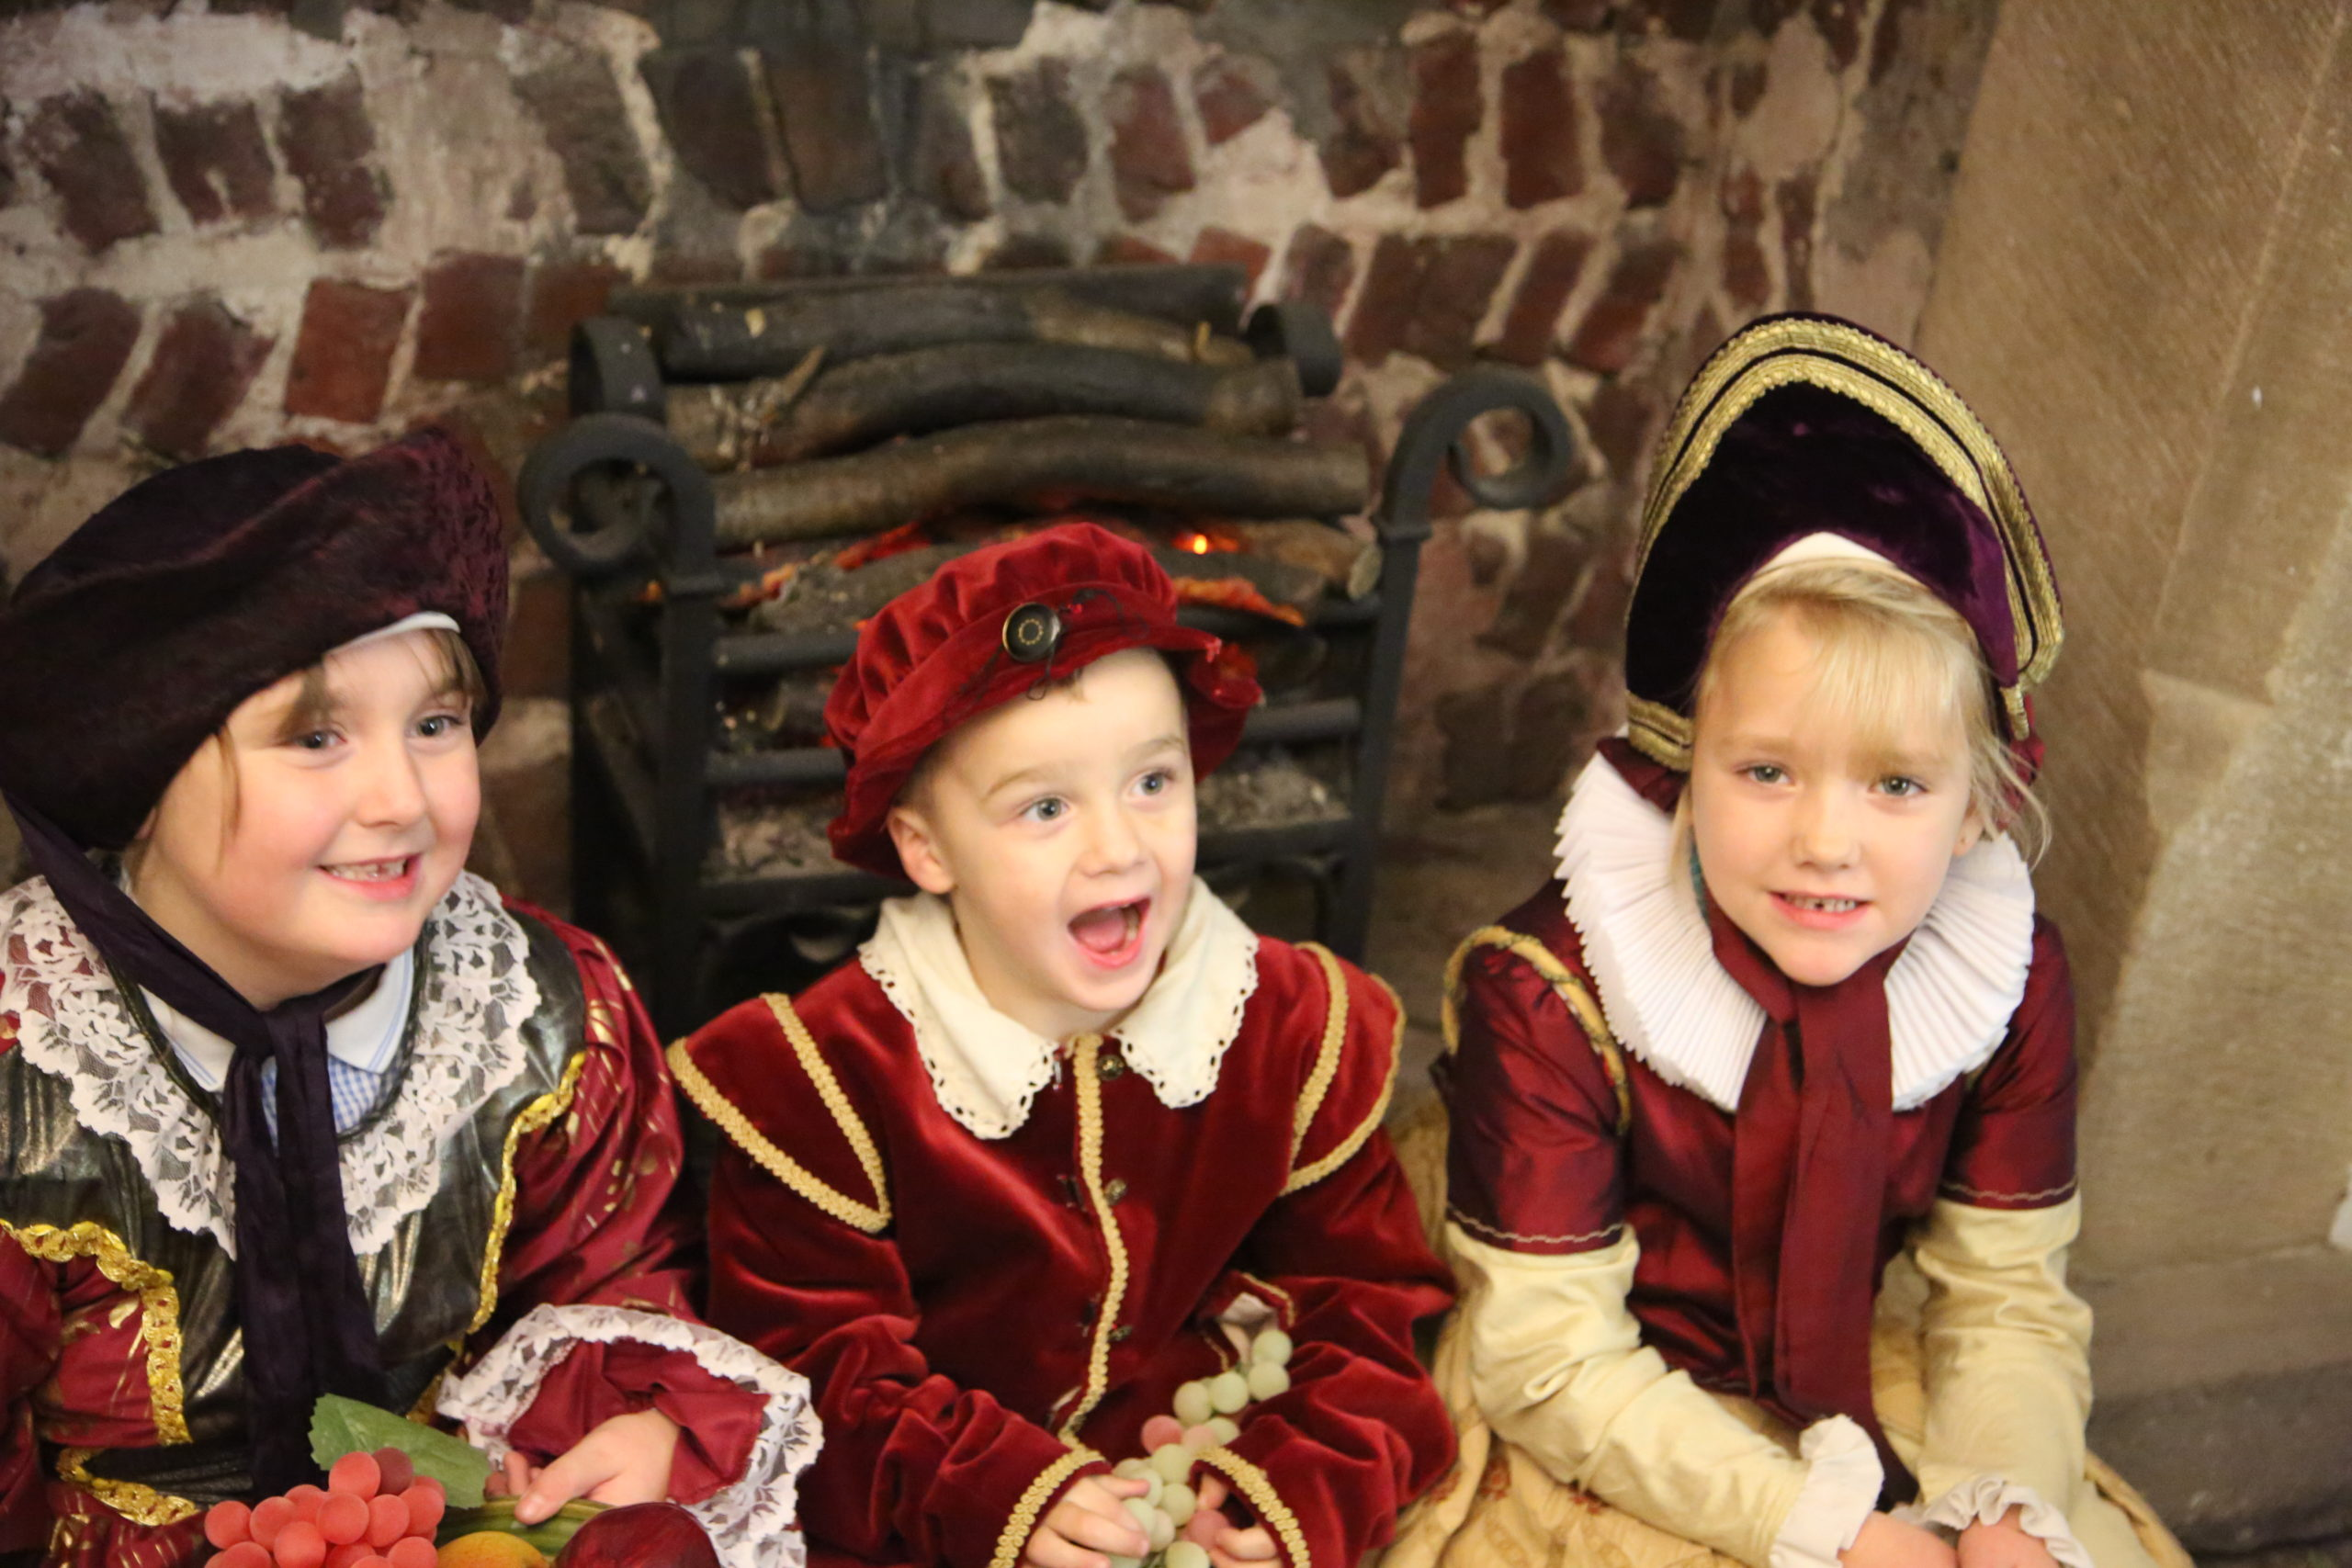 Children dressing up as Tudors in the Turret House